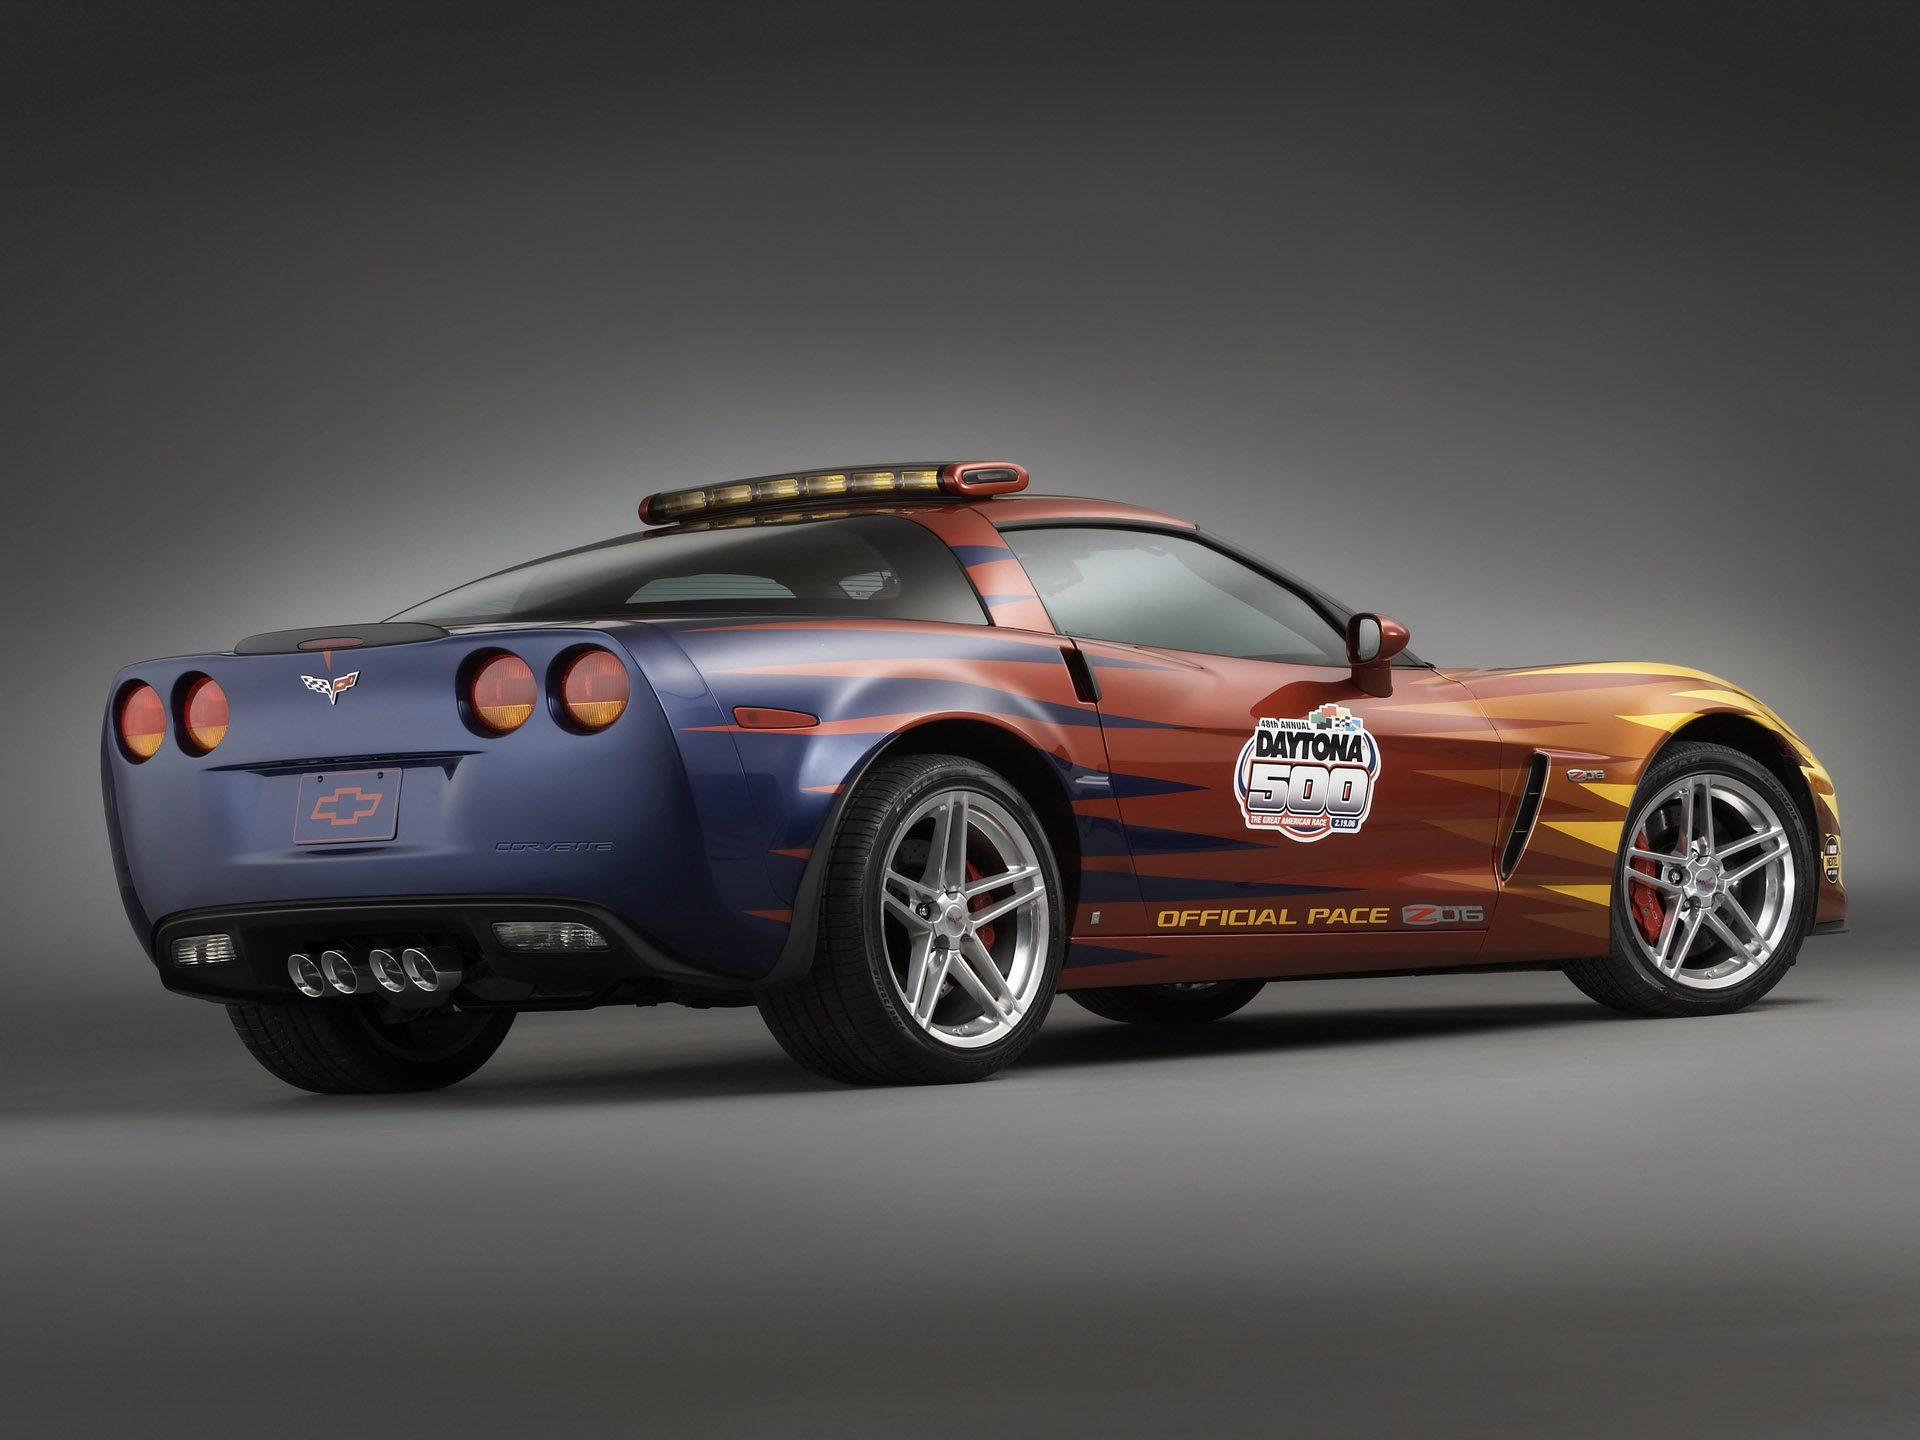 picture of Chevrolet Corvette, Z06, Daytona 500 Pace Car